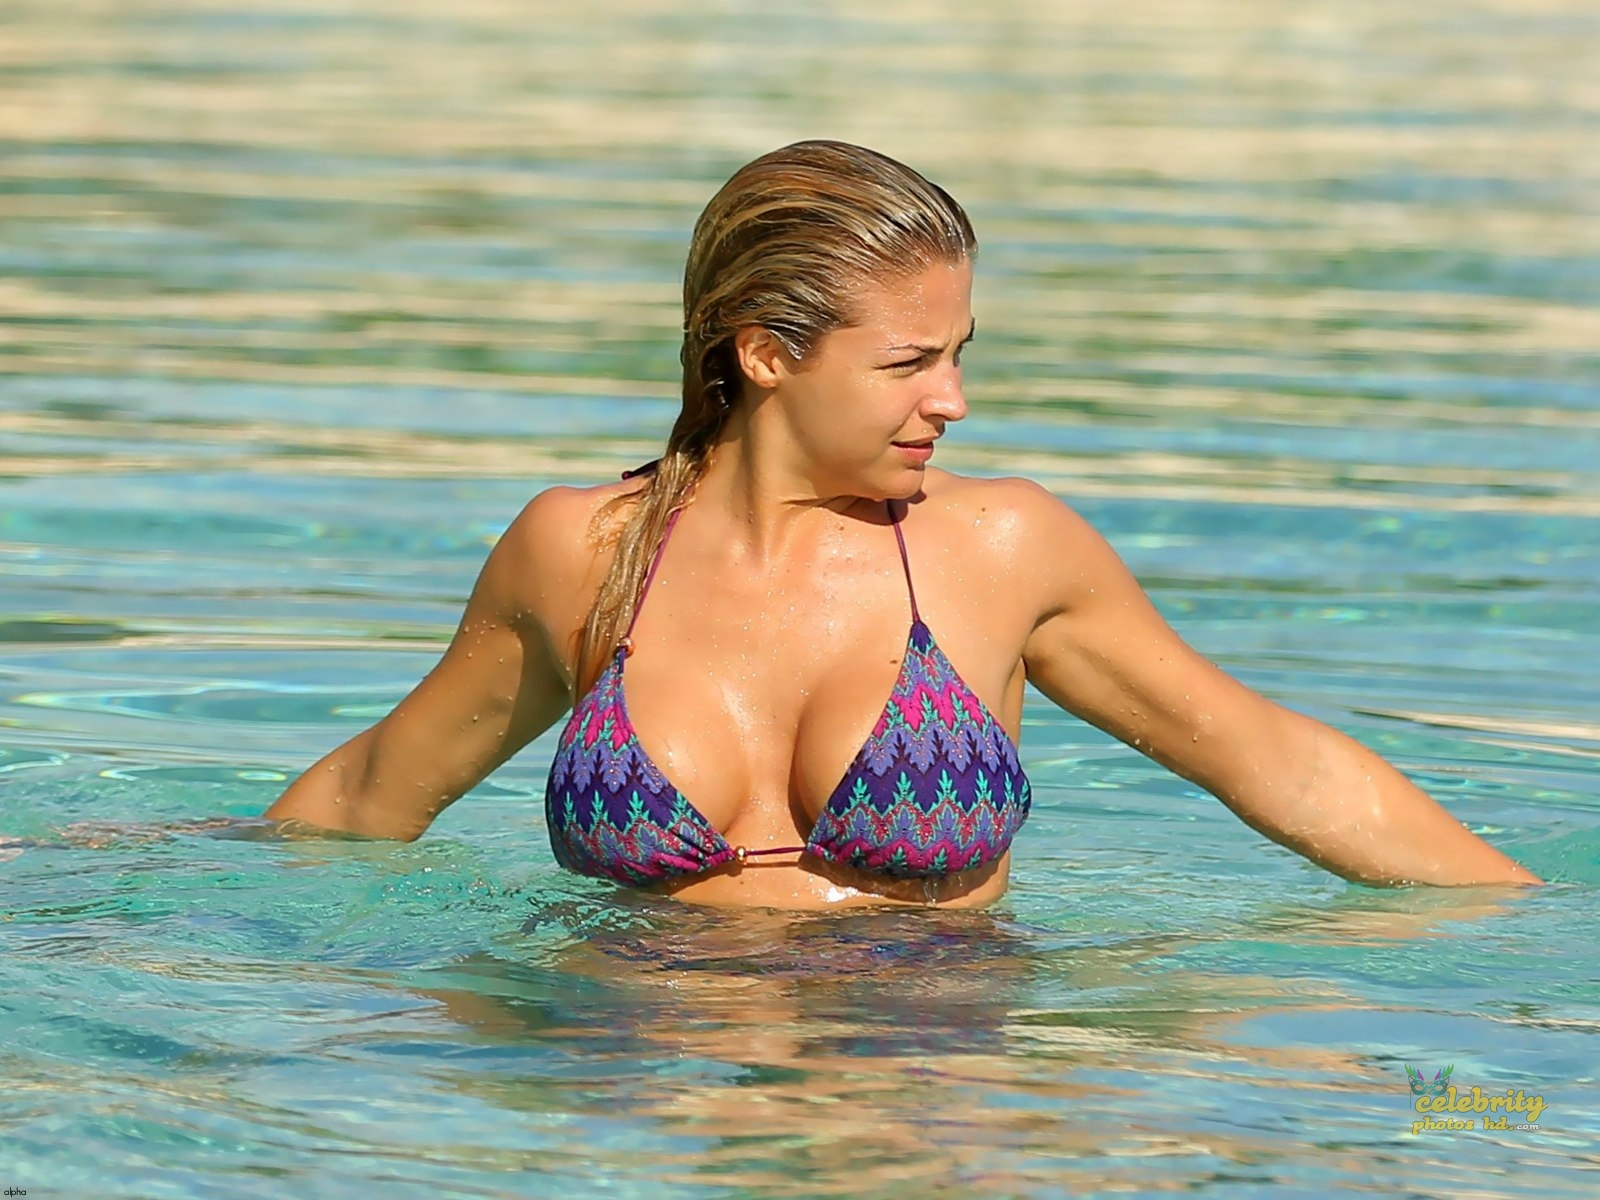 Hollywood Actress Gemma Atkinson Bikini Photo (5)